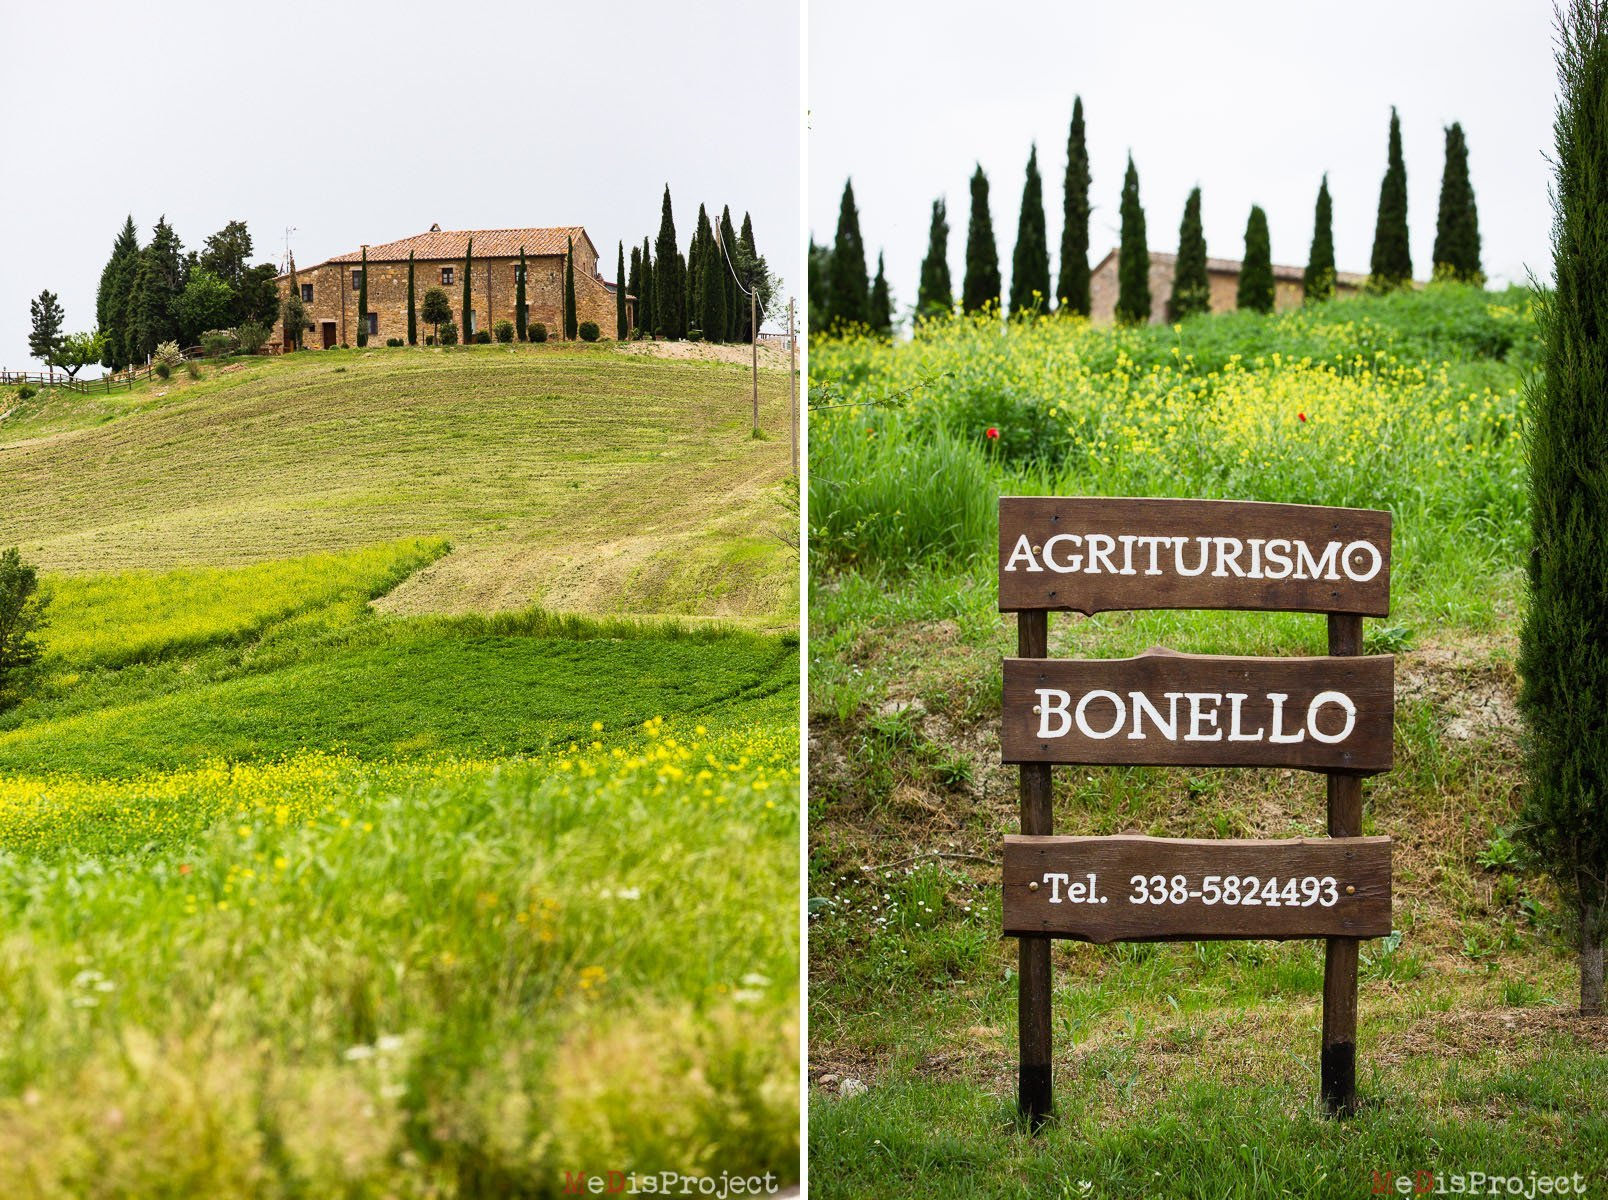 bonello farmhouse in san quirico d'orcia